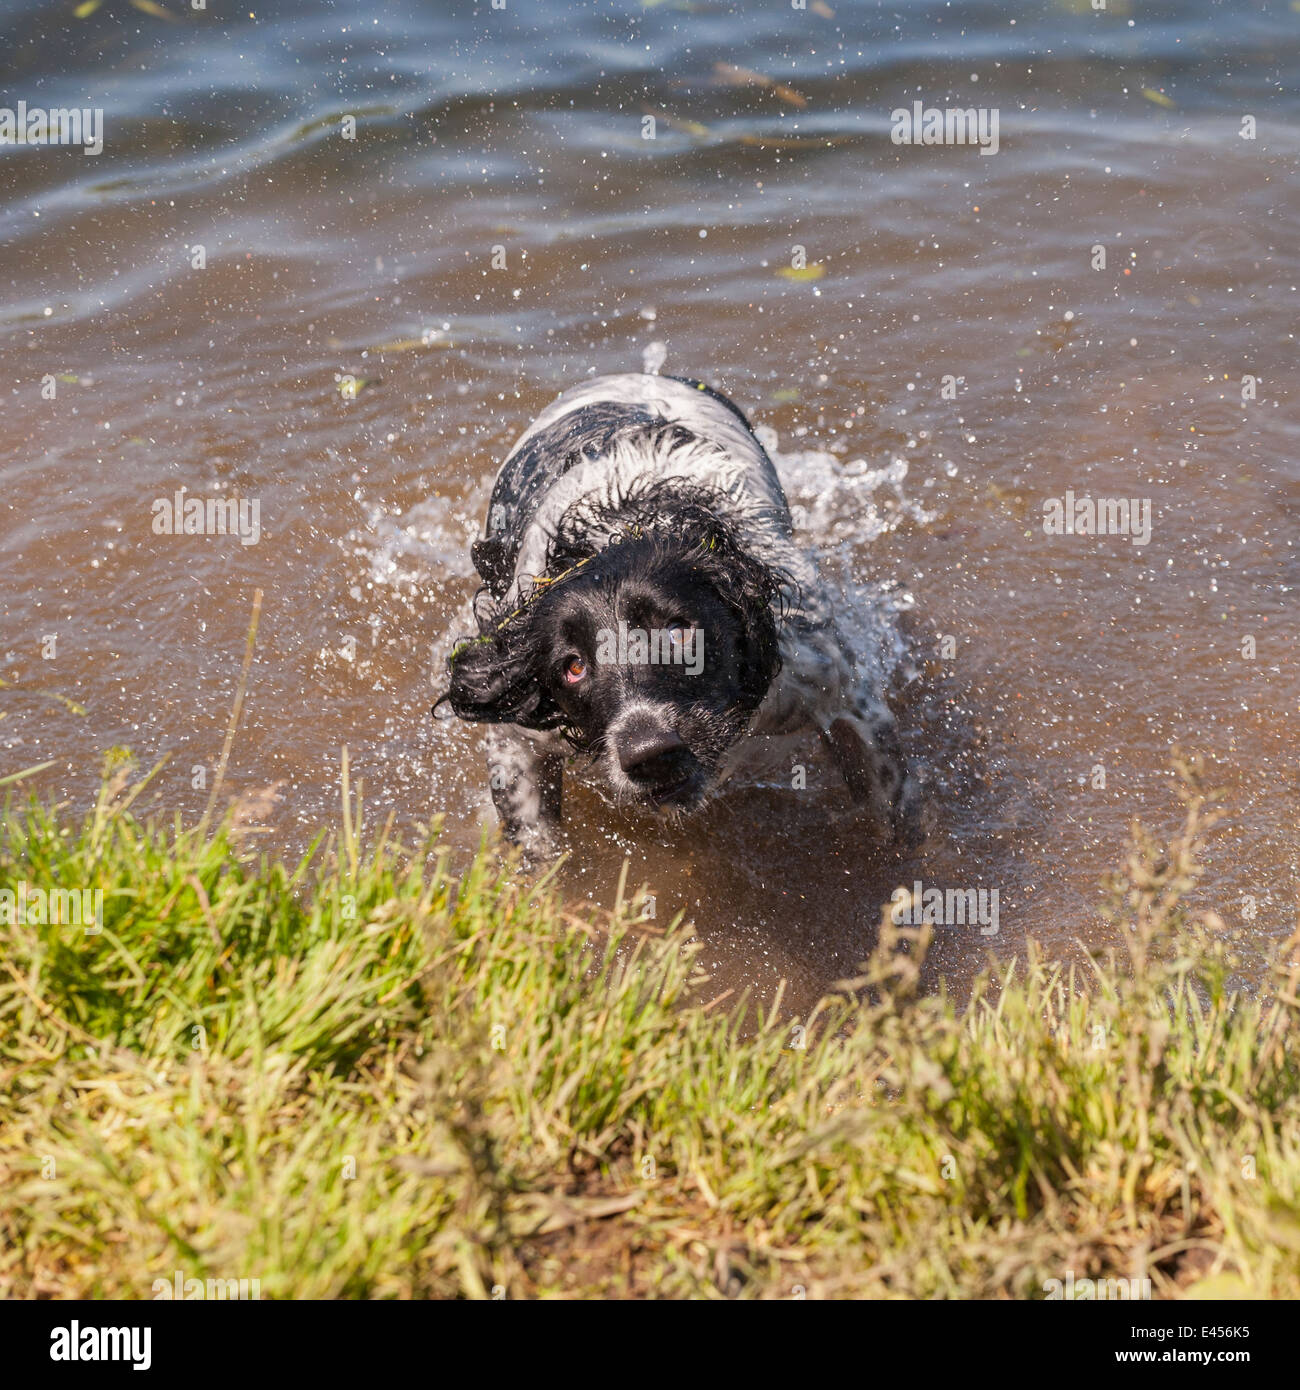 A wet 2 year old working English Springer Spaniel dog swimming in the river and shaking off water showing movement Stock Photo